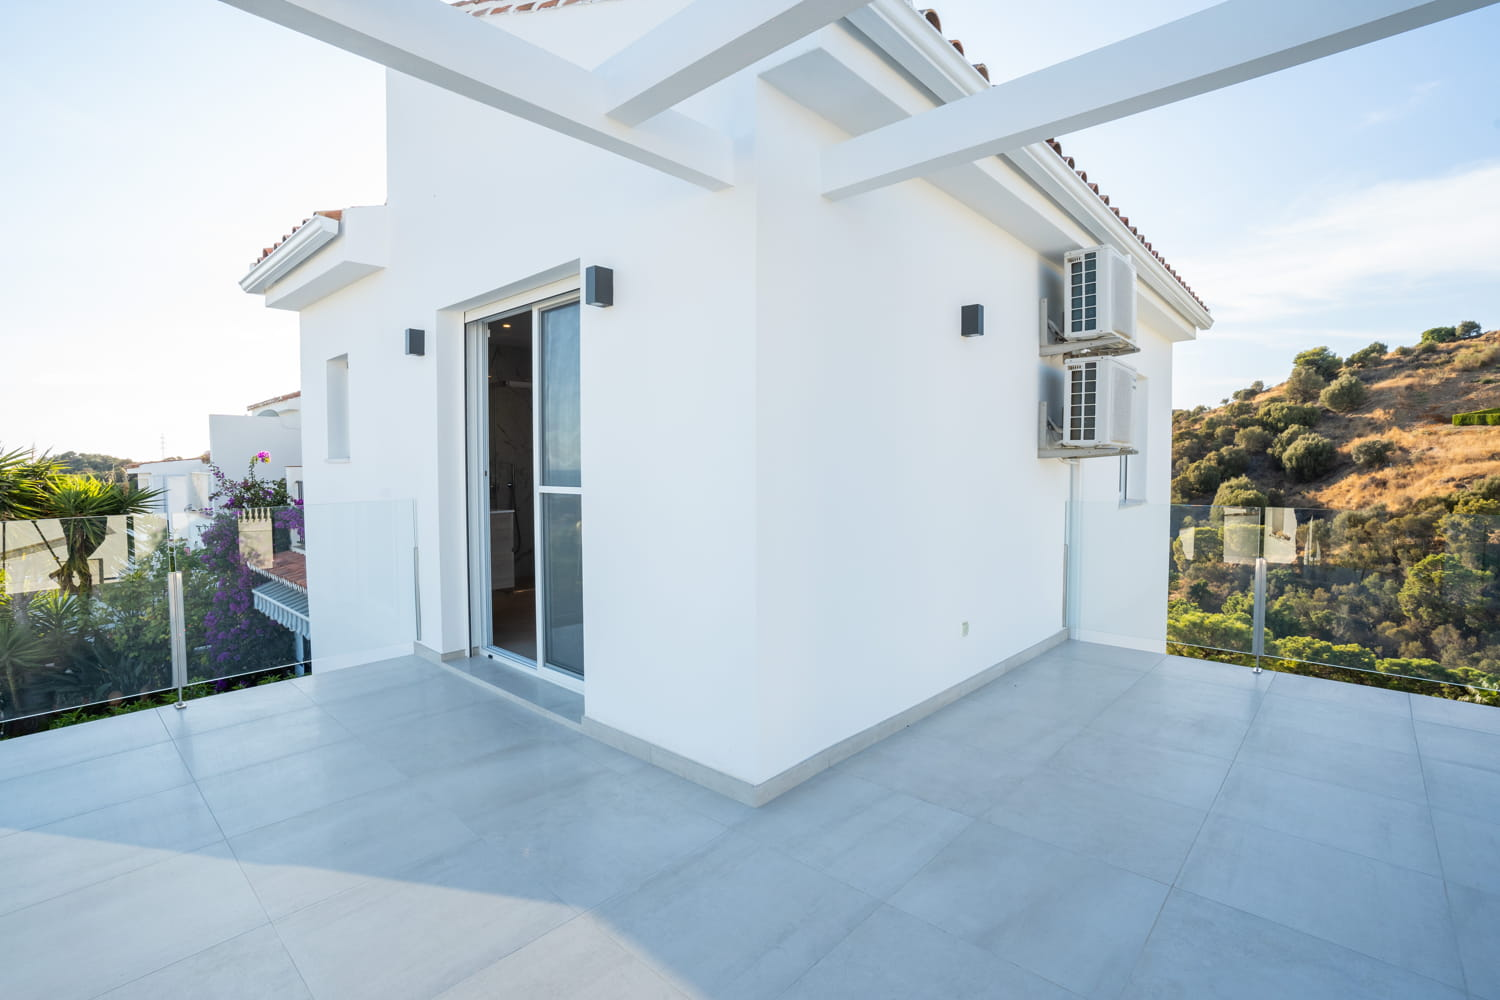 reforma integral villa mijas costa u projects (3)